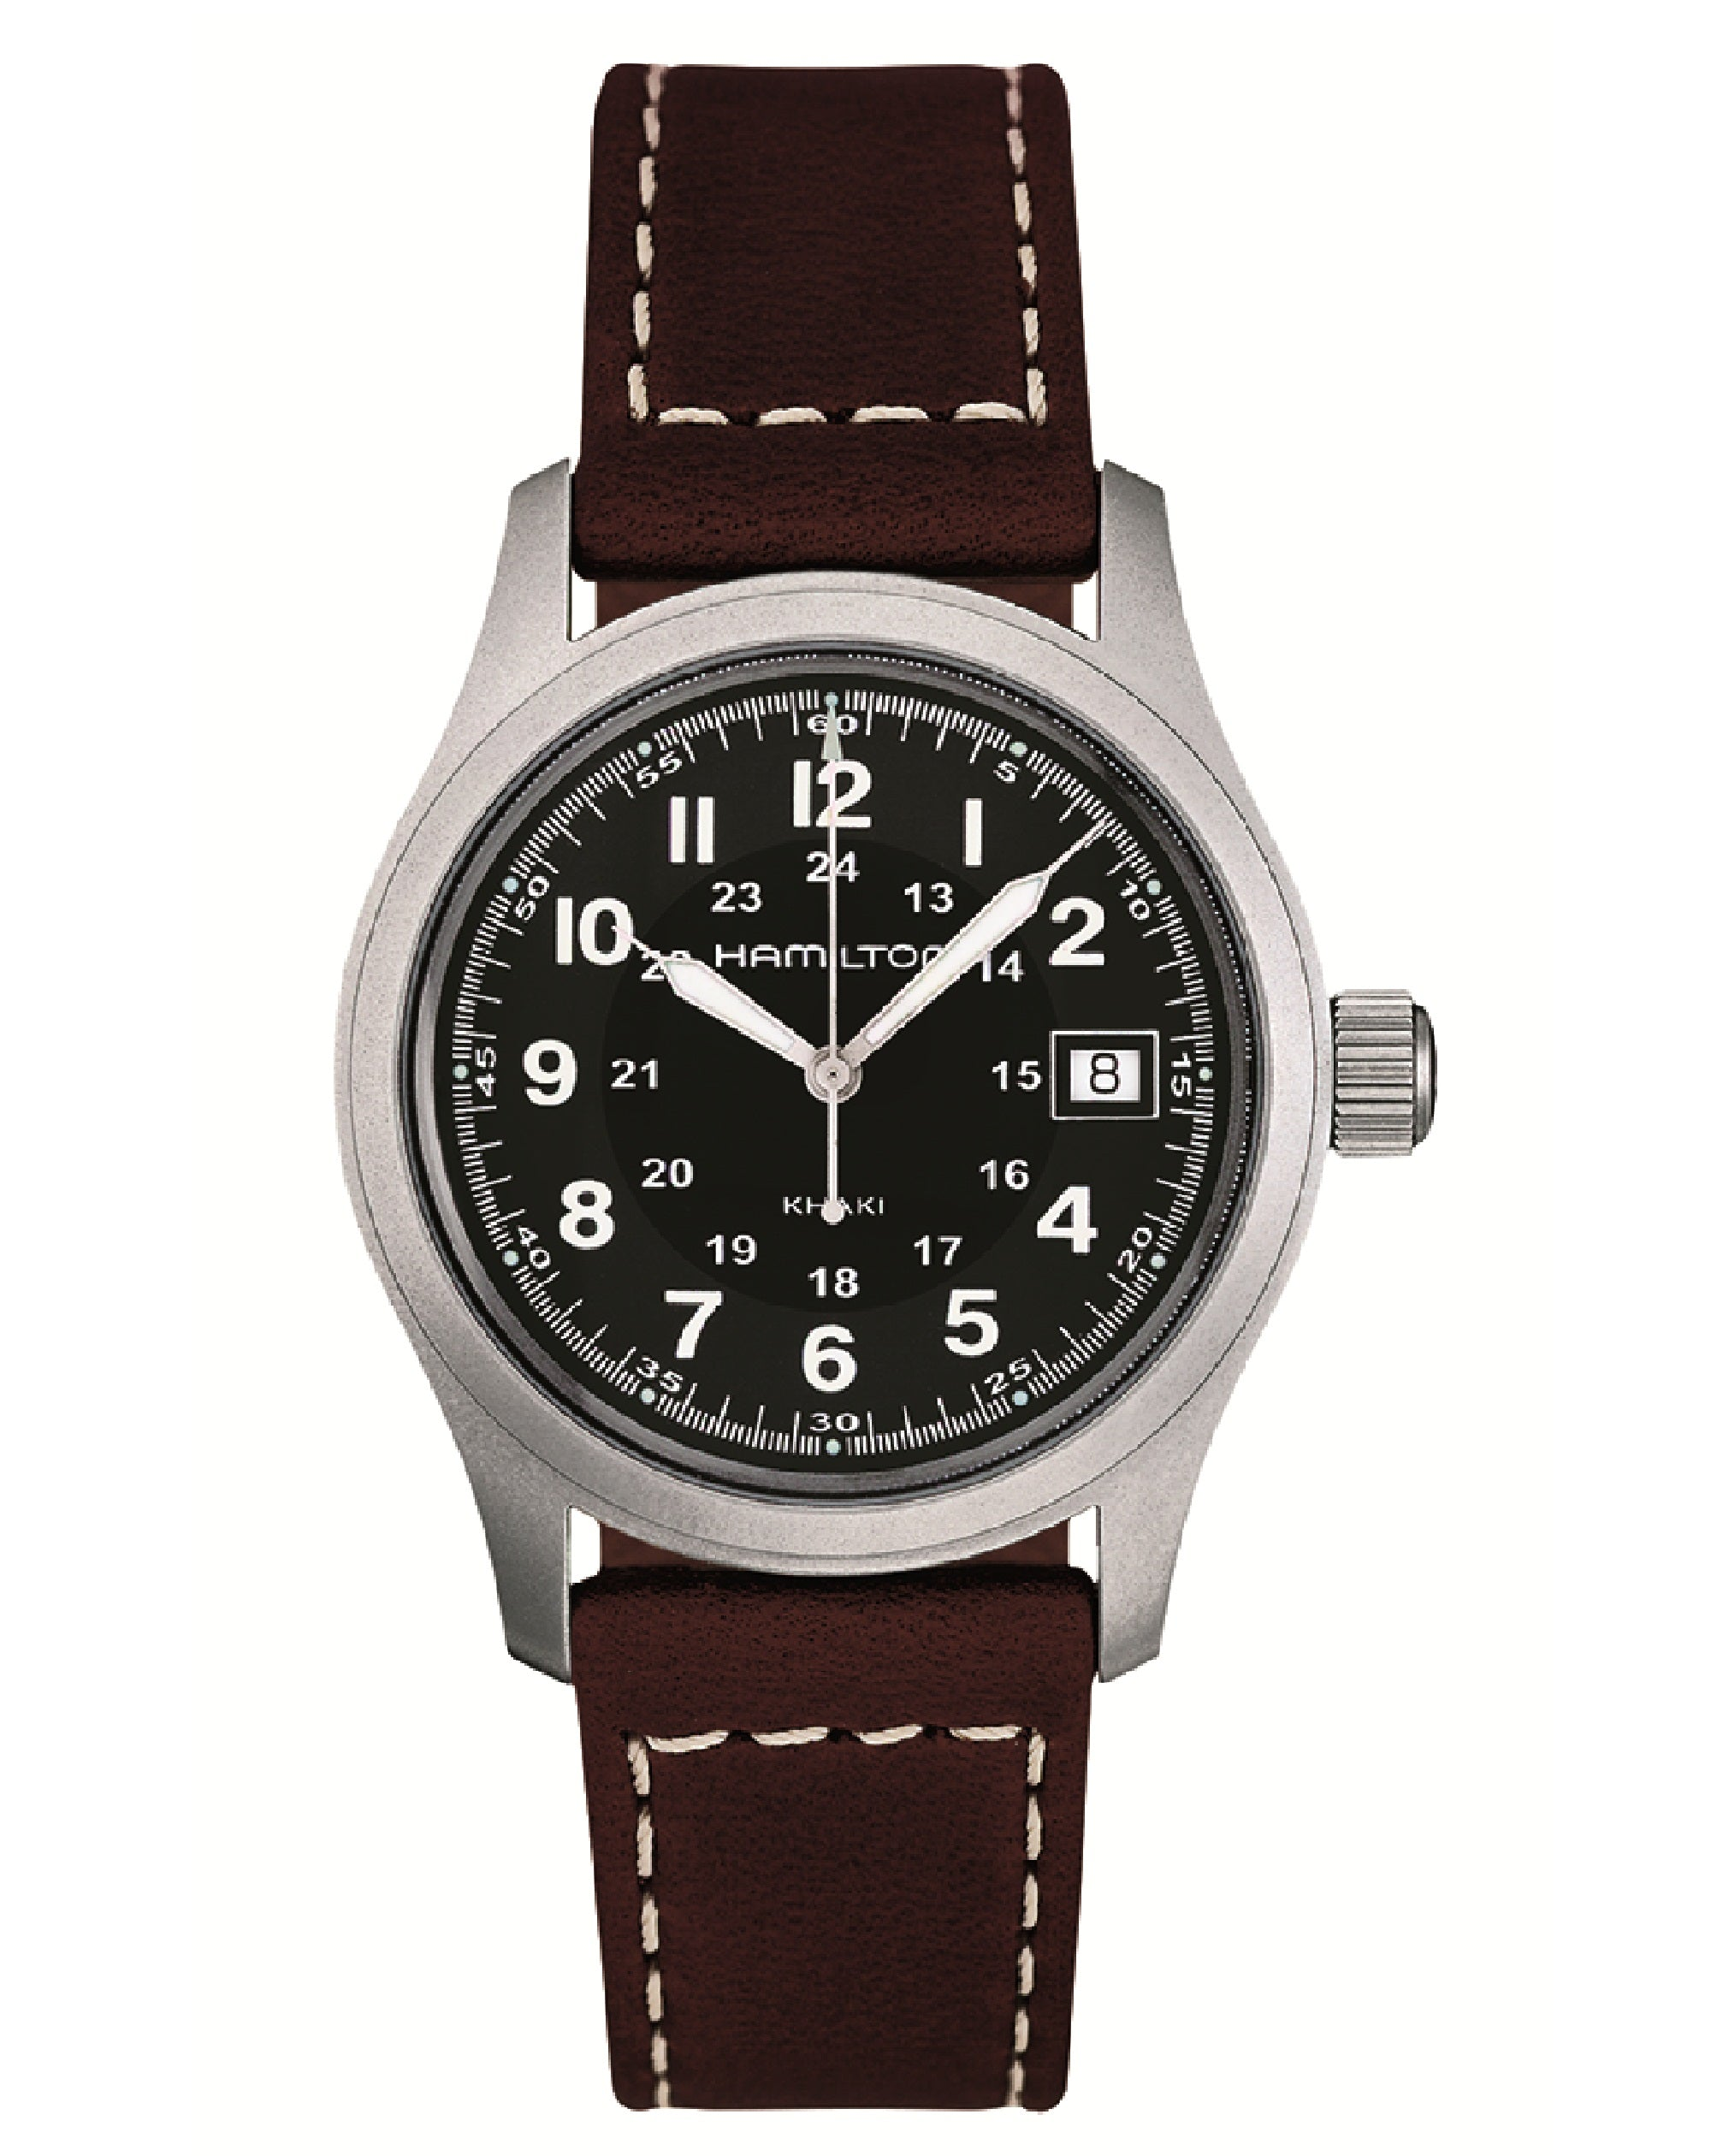 Khaki Field Quartz Watch, H68411533